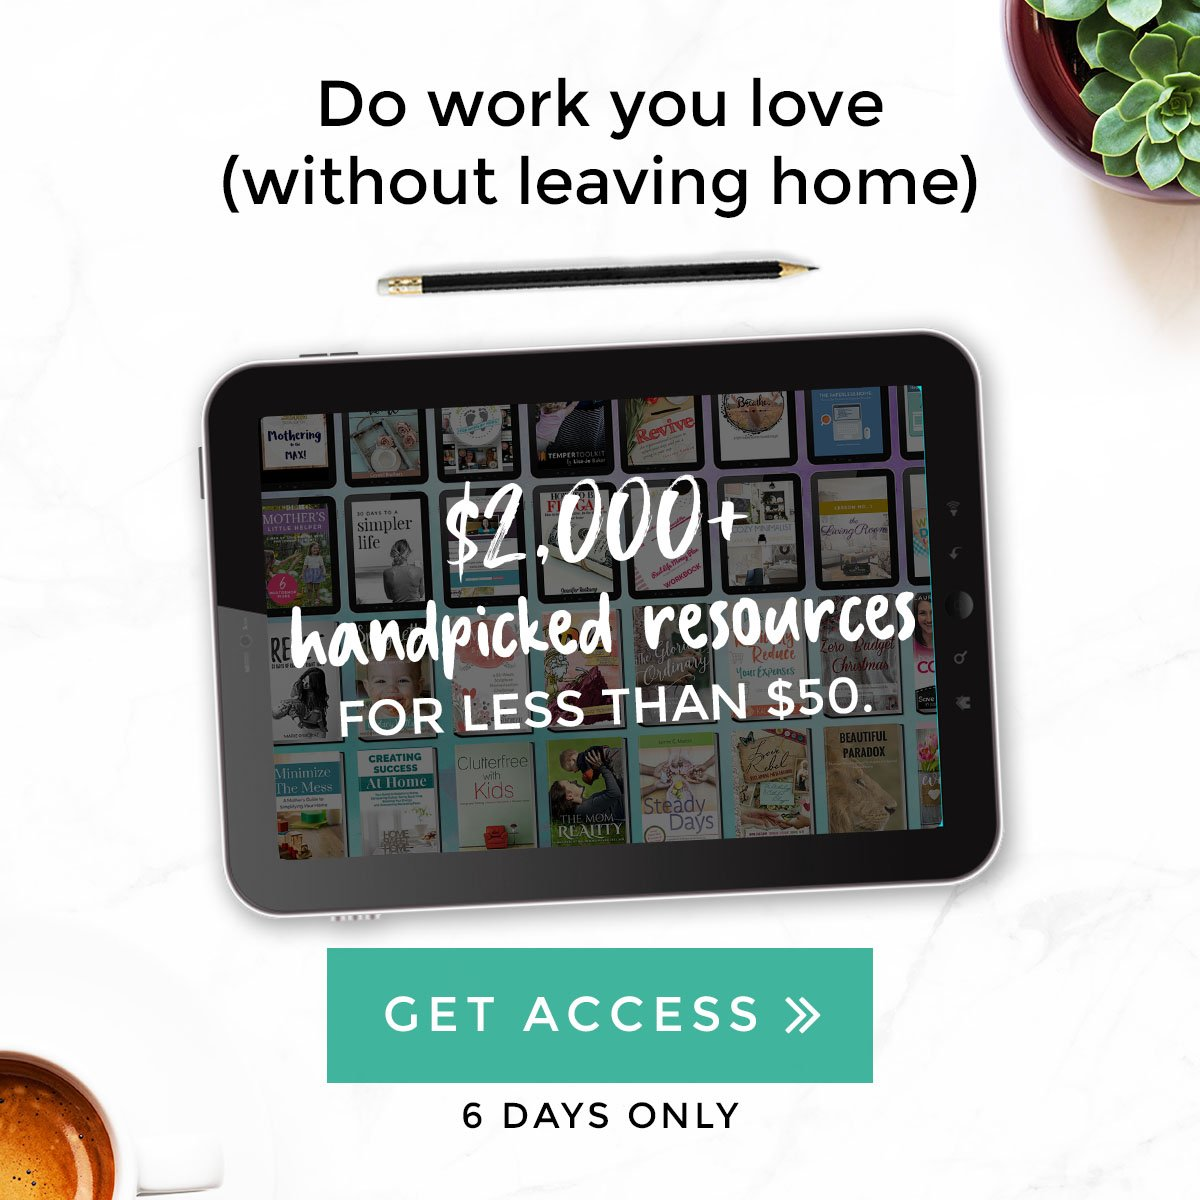 Join the Work from Home Revolution